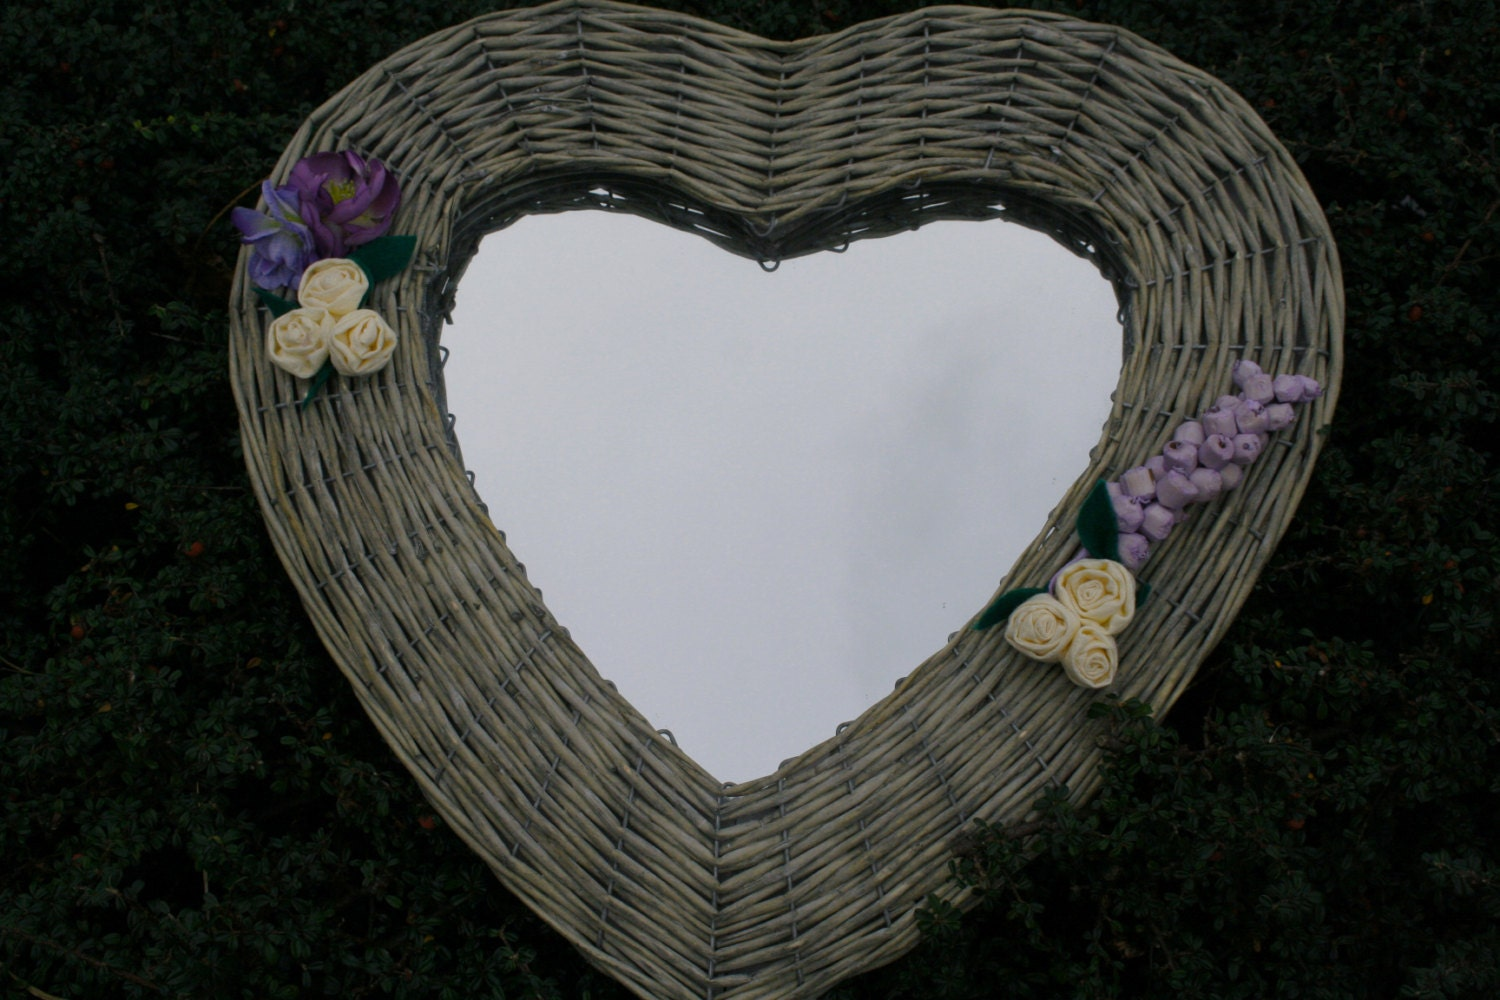 Heart Shaped Wicker Mirror decorated with handmade flowers